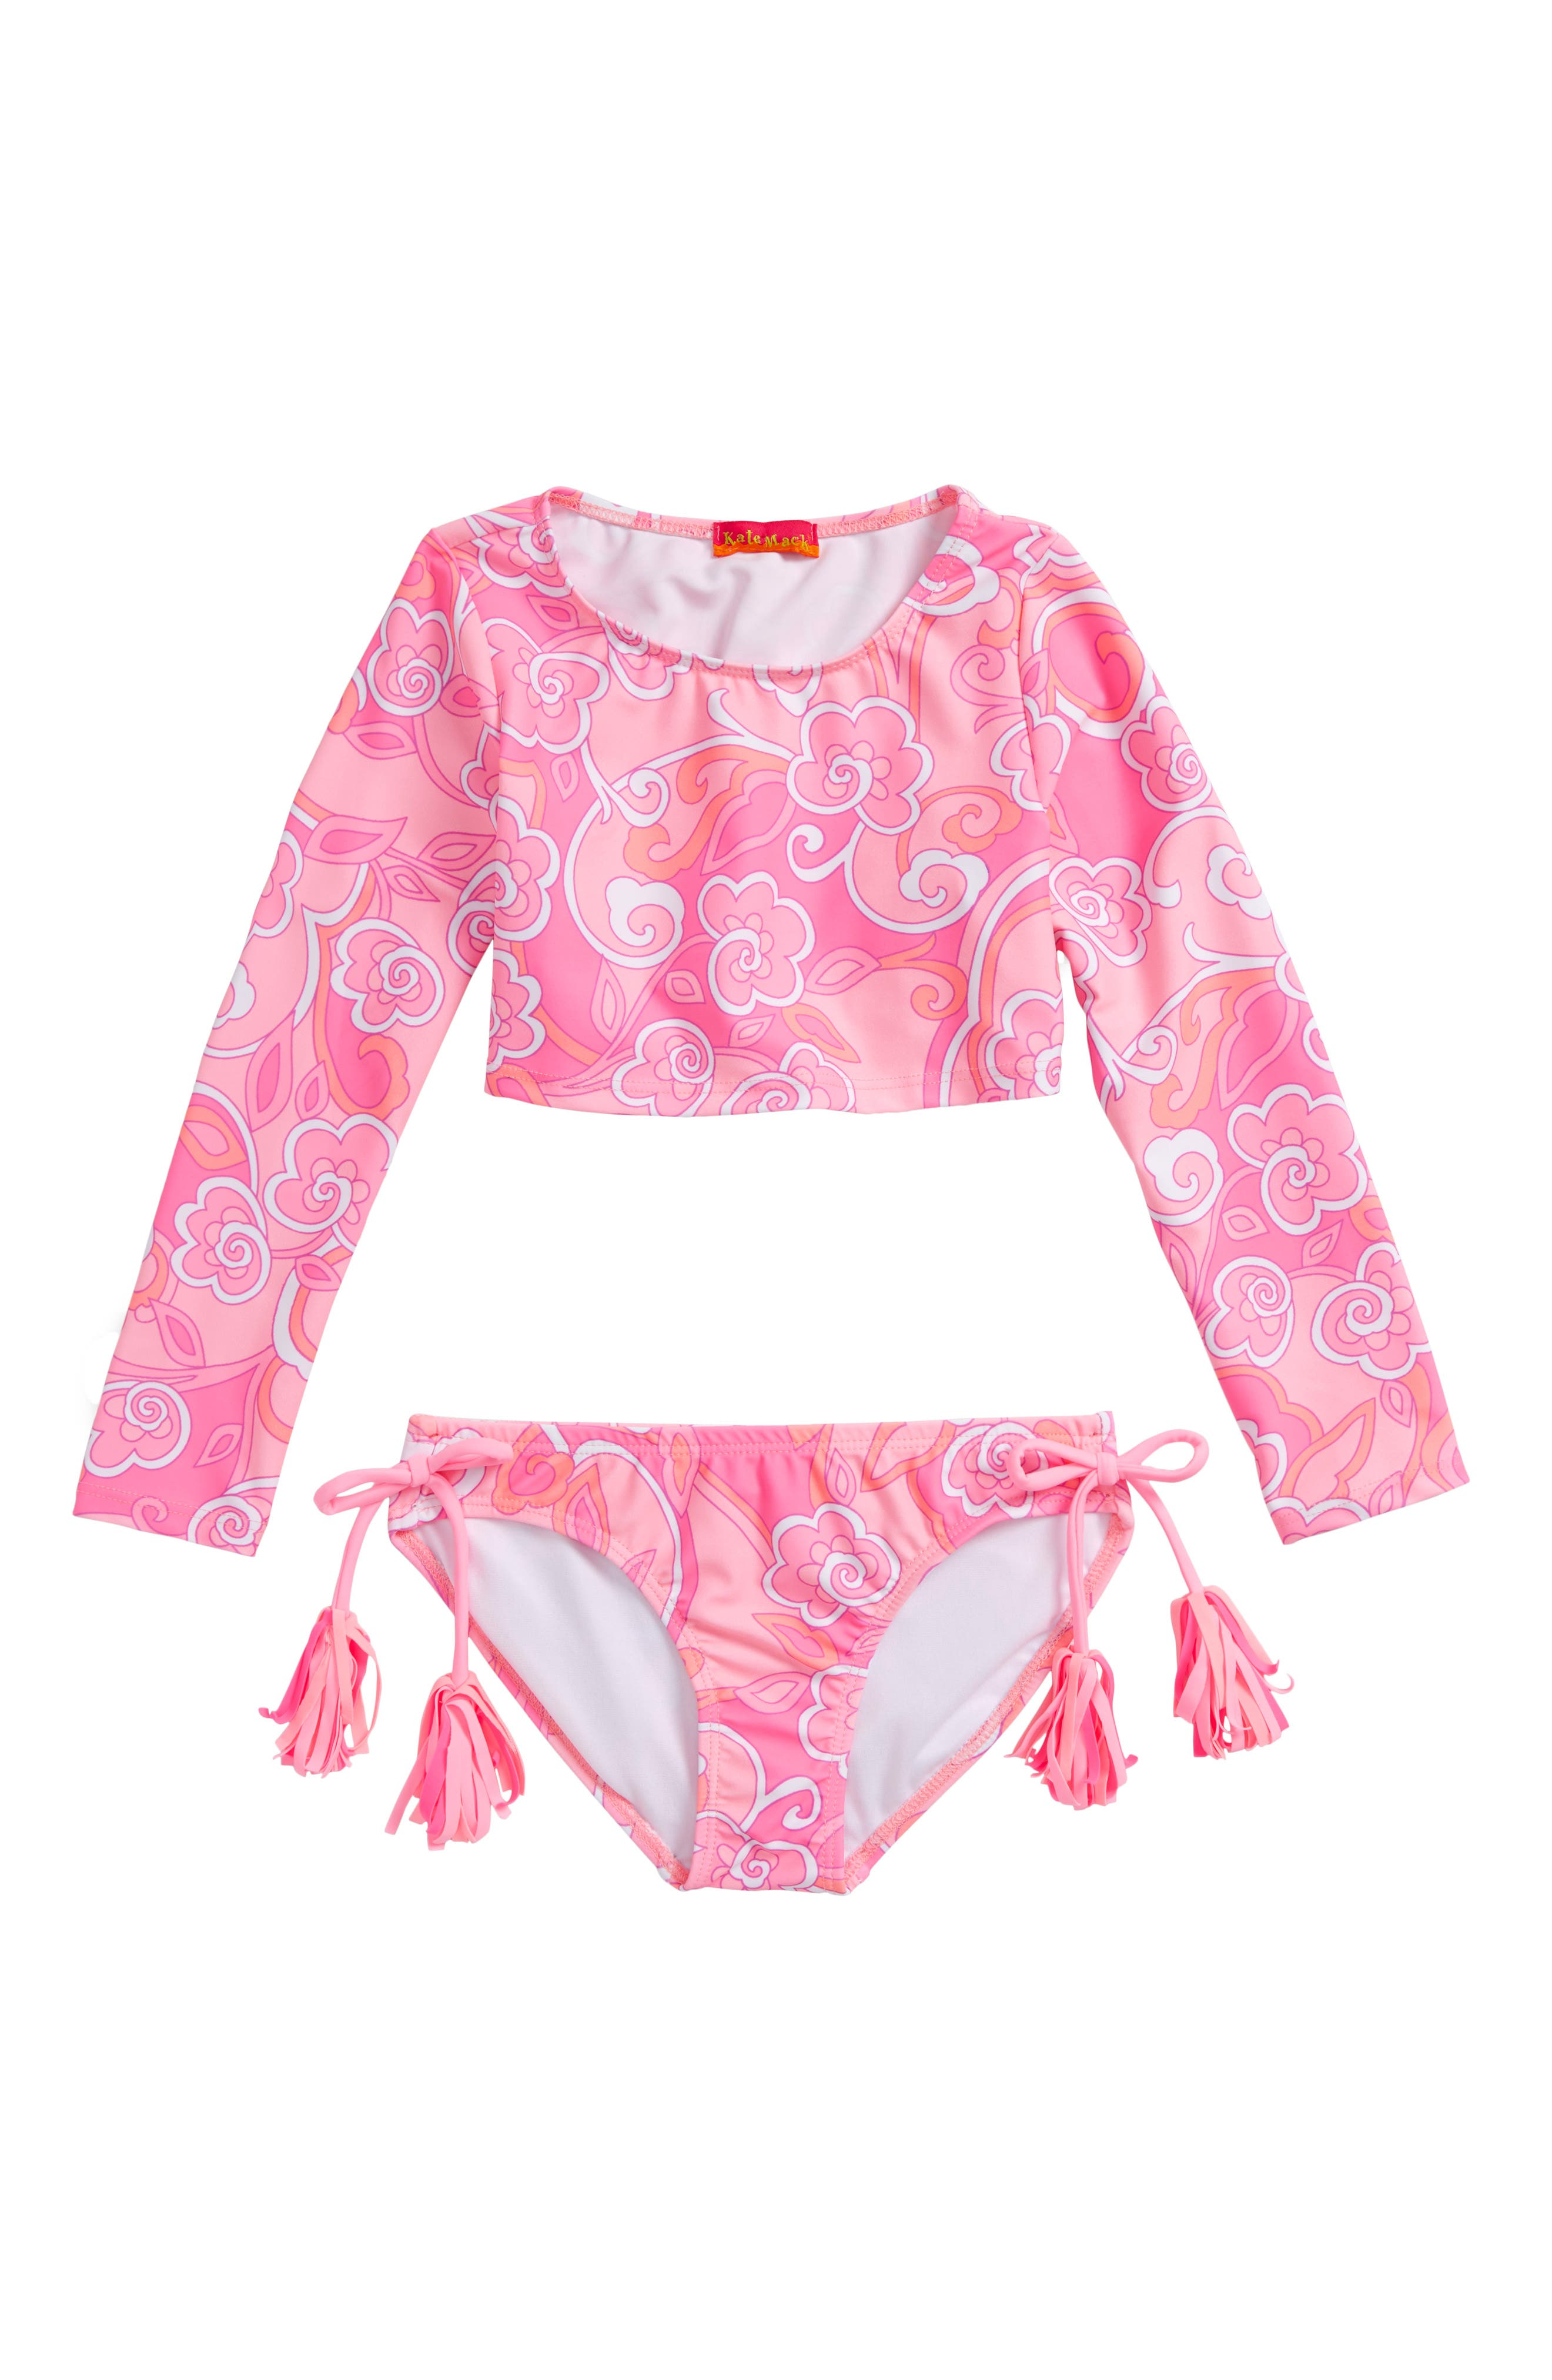 Two-Piece Rashguard Swimsuit,                         Main,                         color, Pink